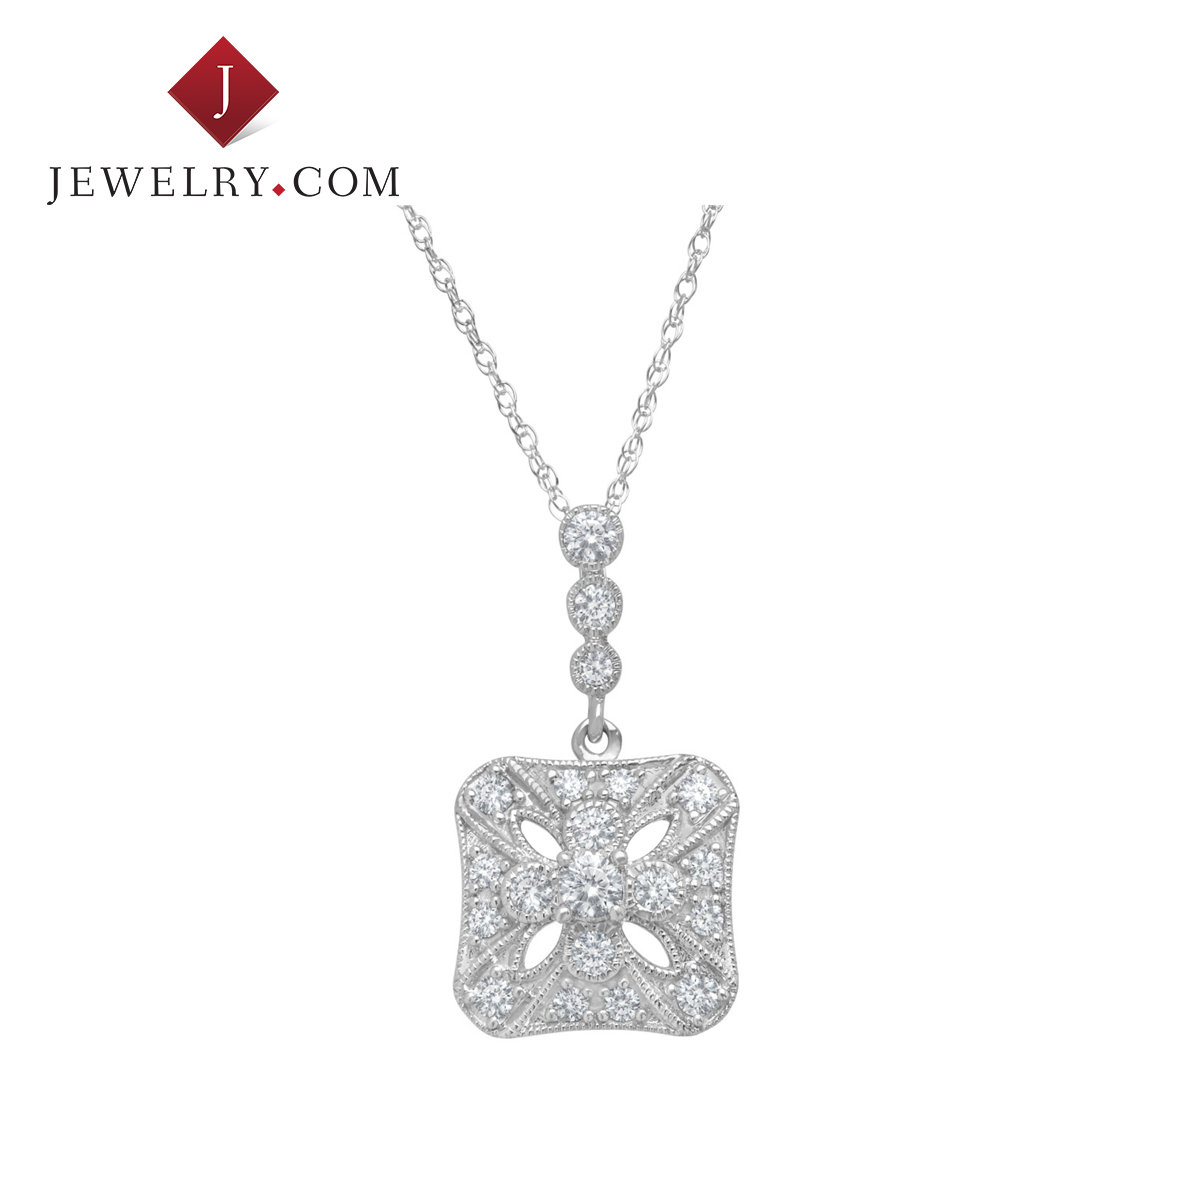 Jewelry.com official ms. classic 0.5 karat k white gold diamond pendant stylish and elegant charm jewelry